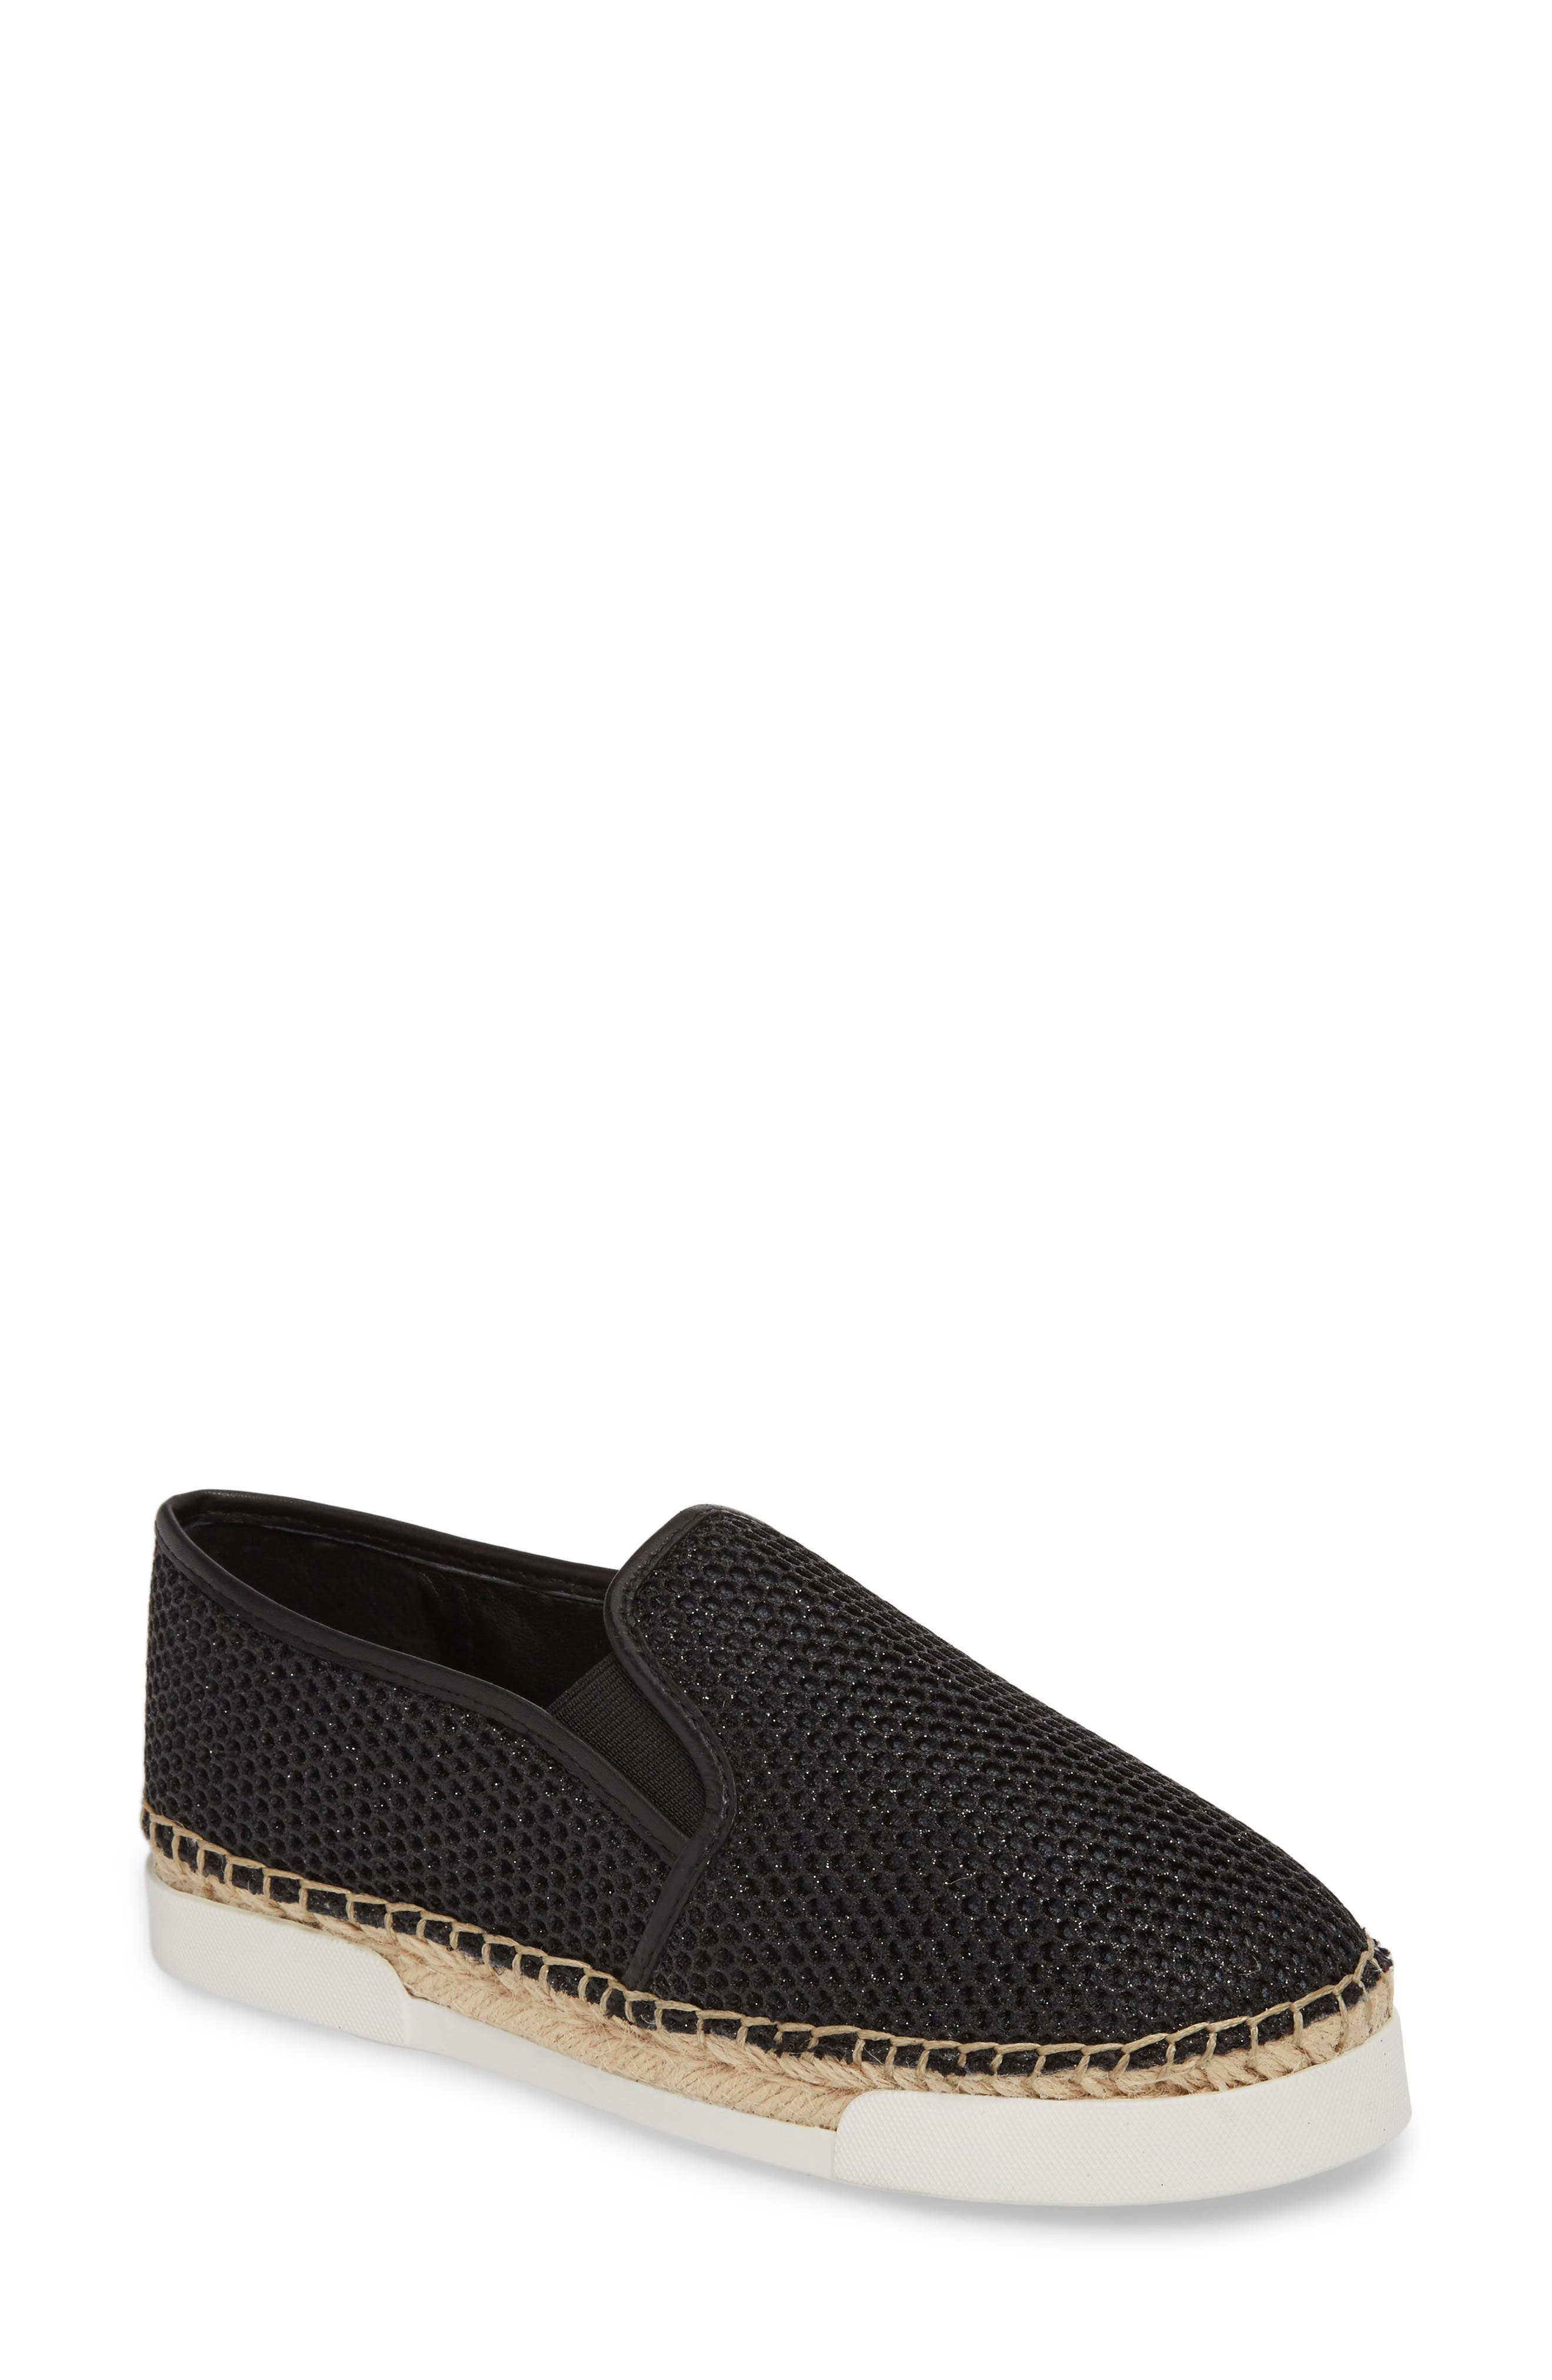 VINCE CAMUTO, Tambie Slip-On Sneaker, Main thumbnail 1, color, 001